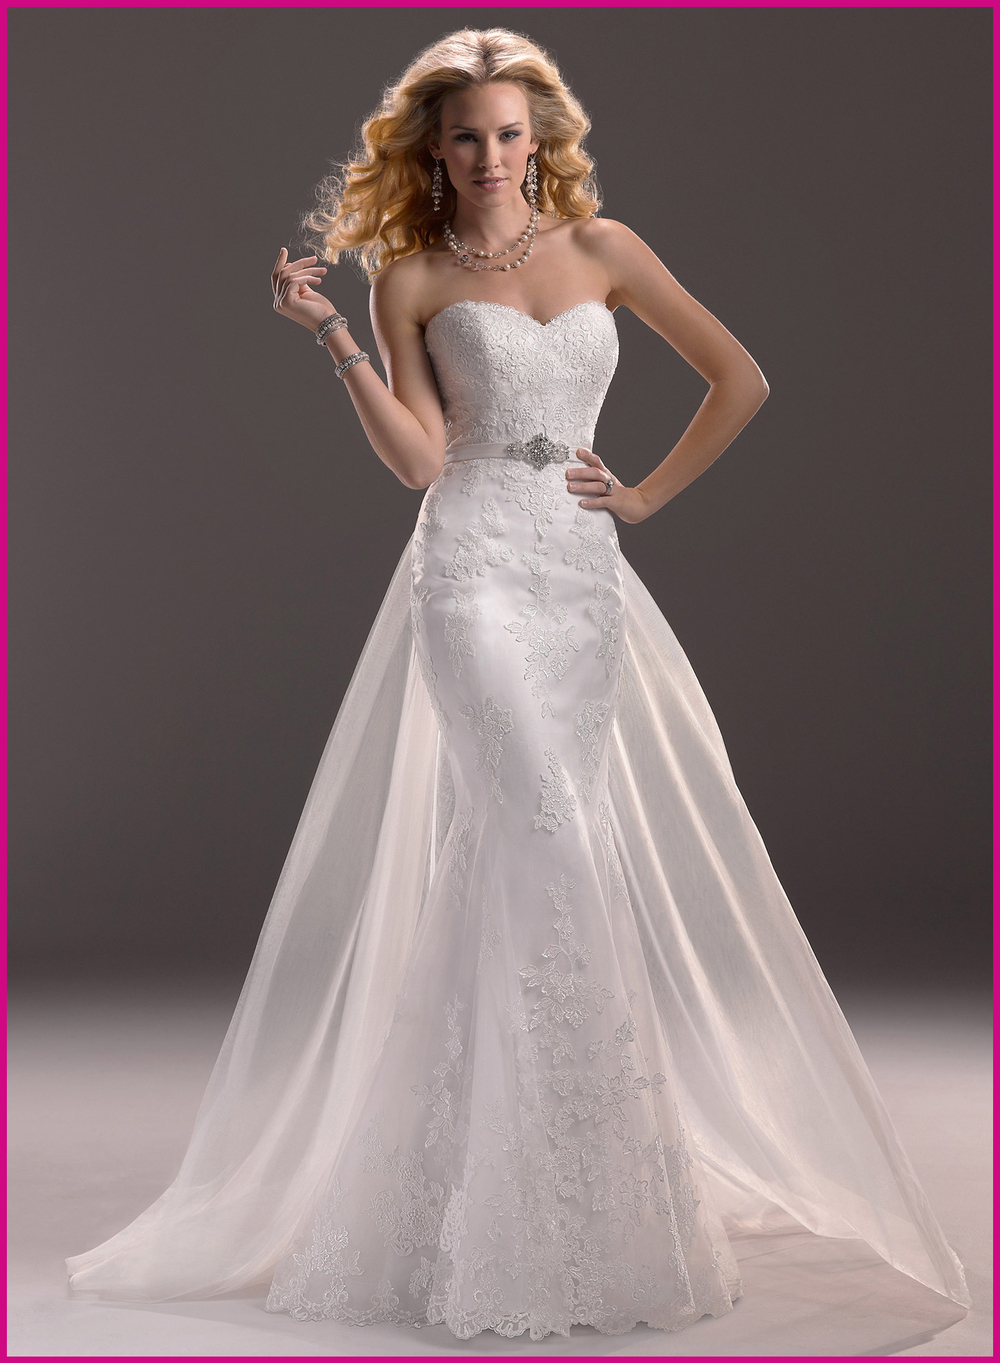 Compare Prices on Lucy Wedding Dress- Online Shopping/Buy Low ...